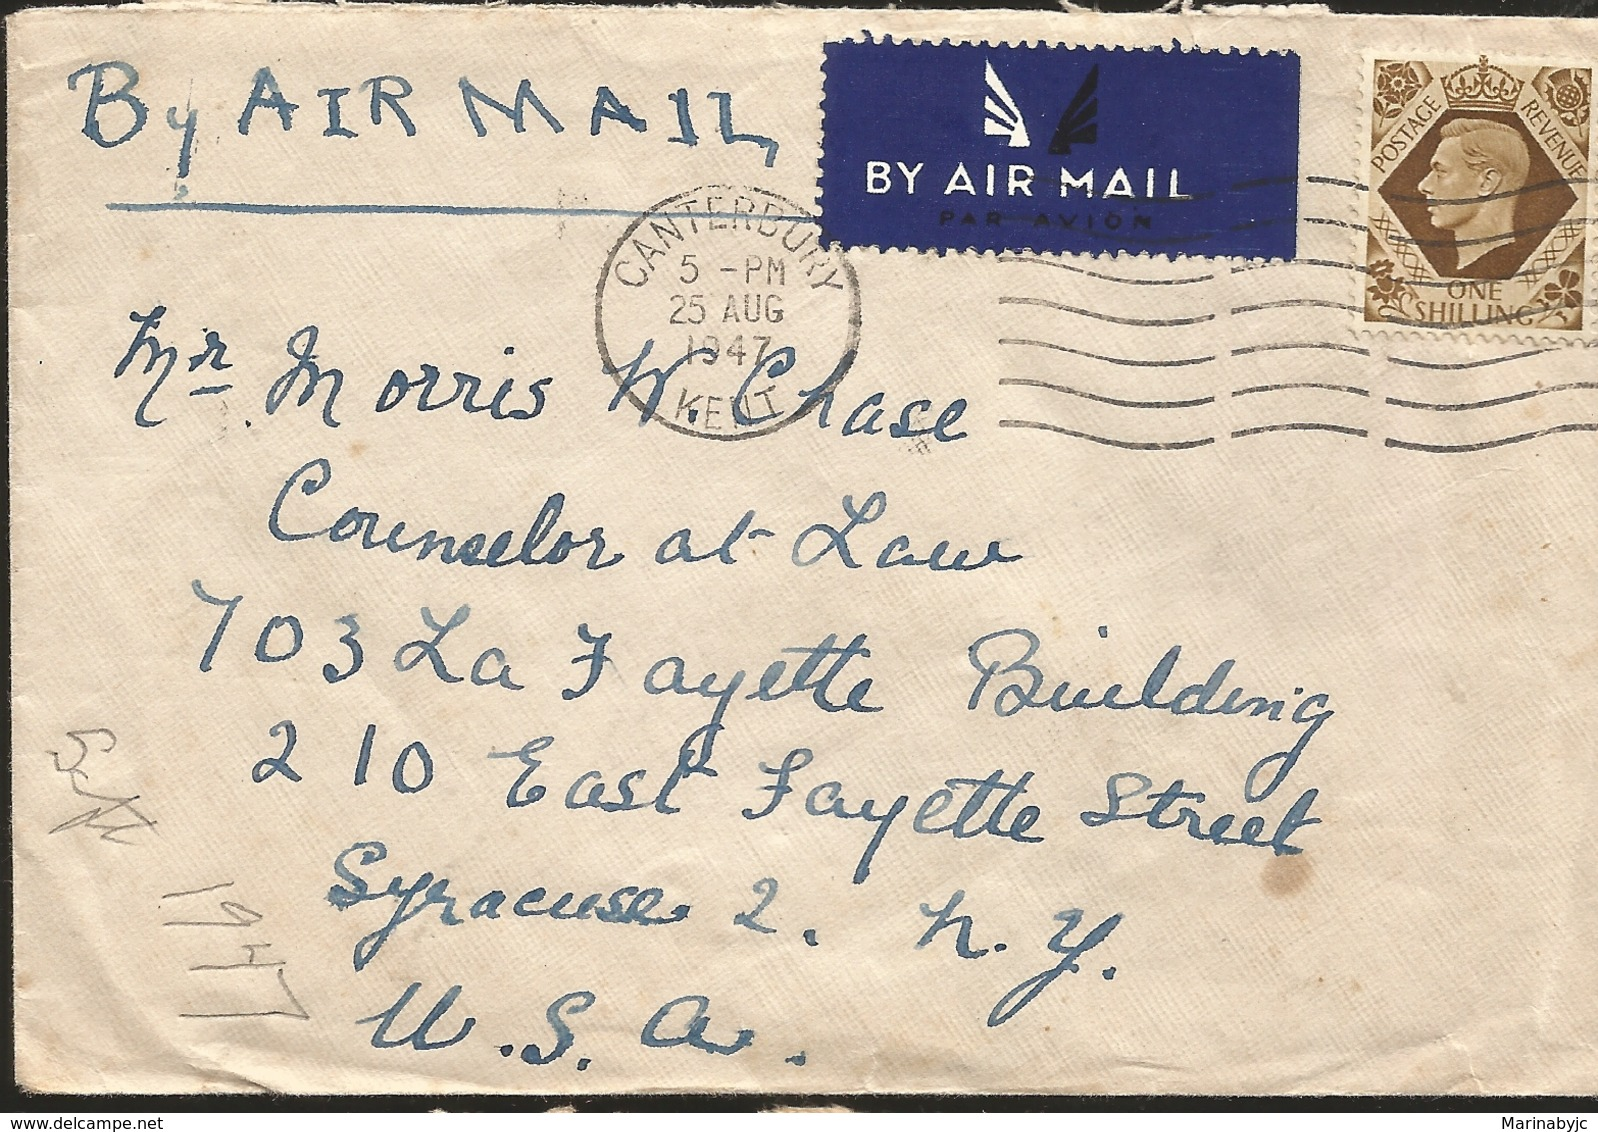 M) 1947,  ENGLAND, AIR MAIL, ONE SHILLING, POSTAL STAMP OF COLOR BROWN, AND A ,MAN WITH CROWN, CIRCULATED COVER FROM ENG - Sonstige - Europa